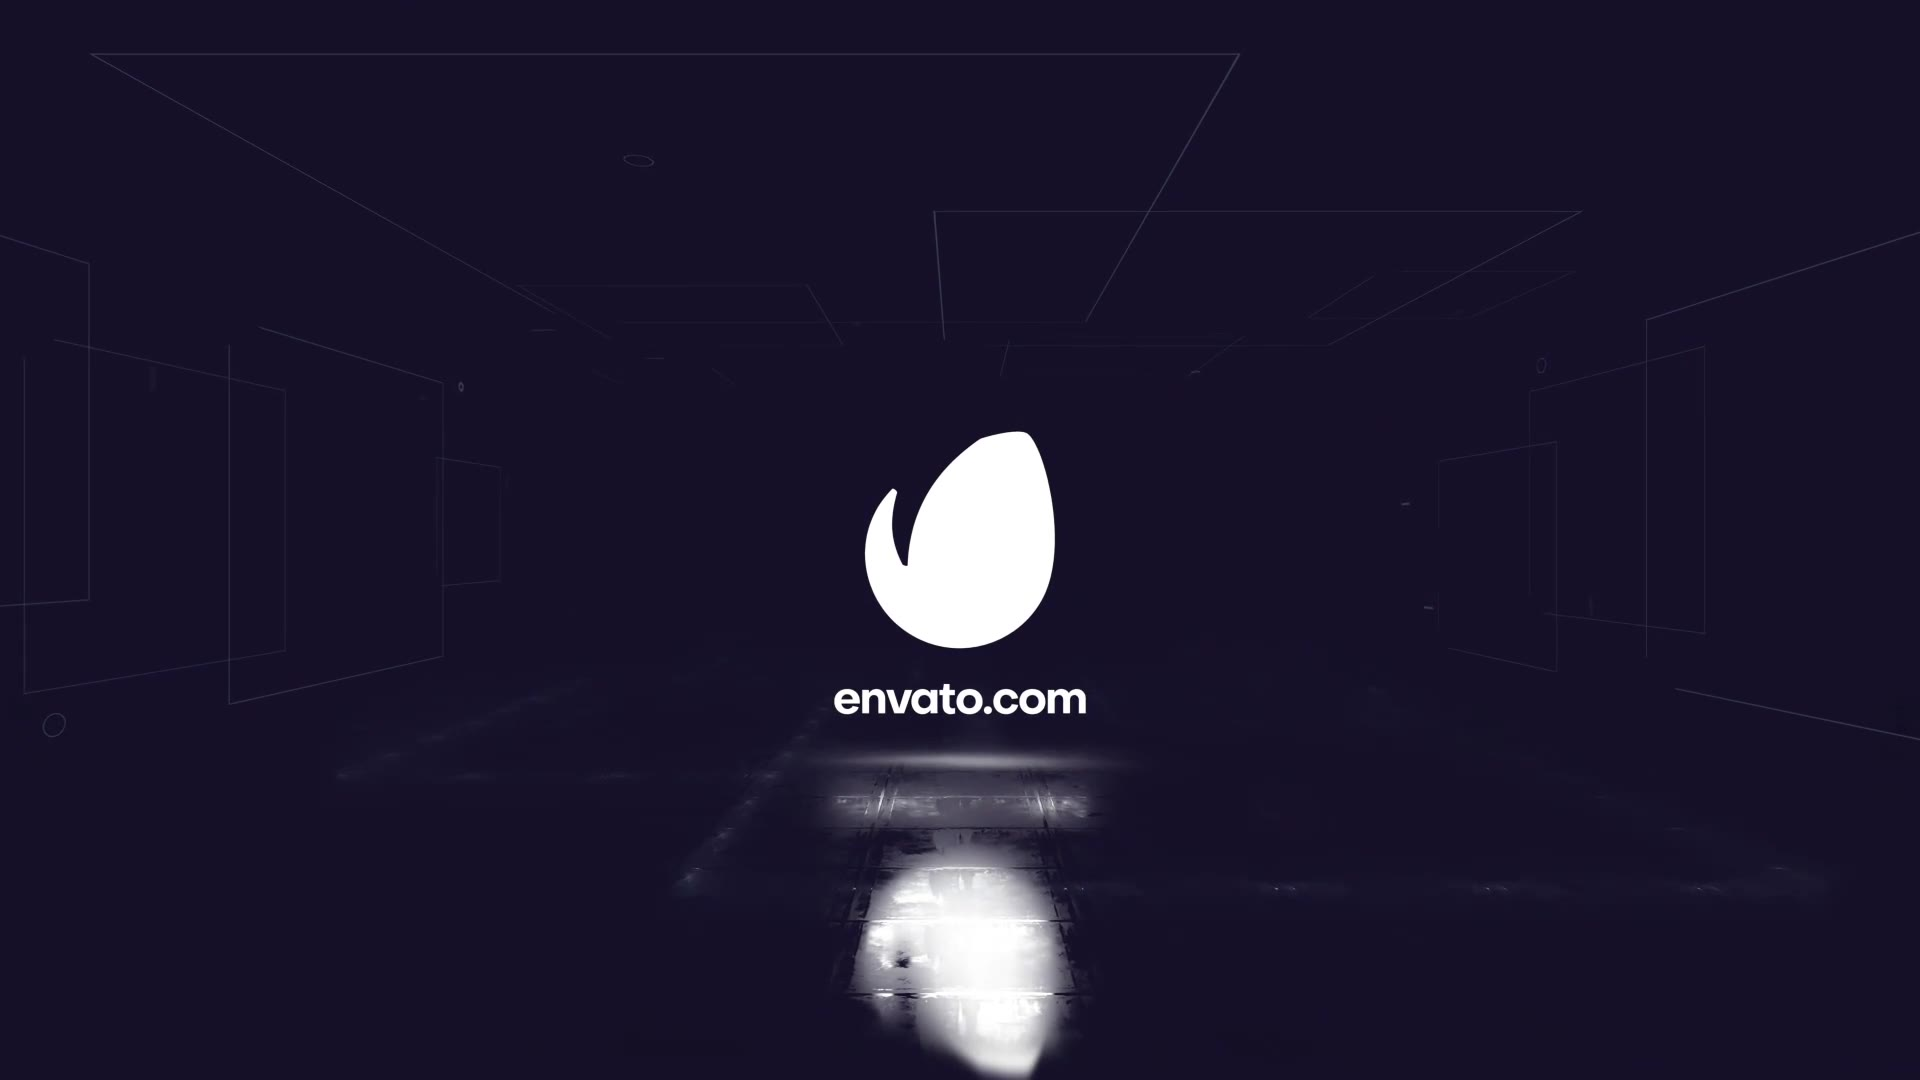 The Logo Reveal Videohive 31507148 After Effects Image 6